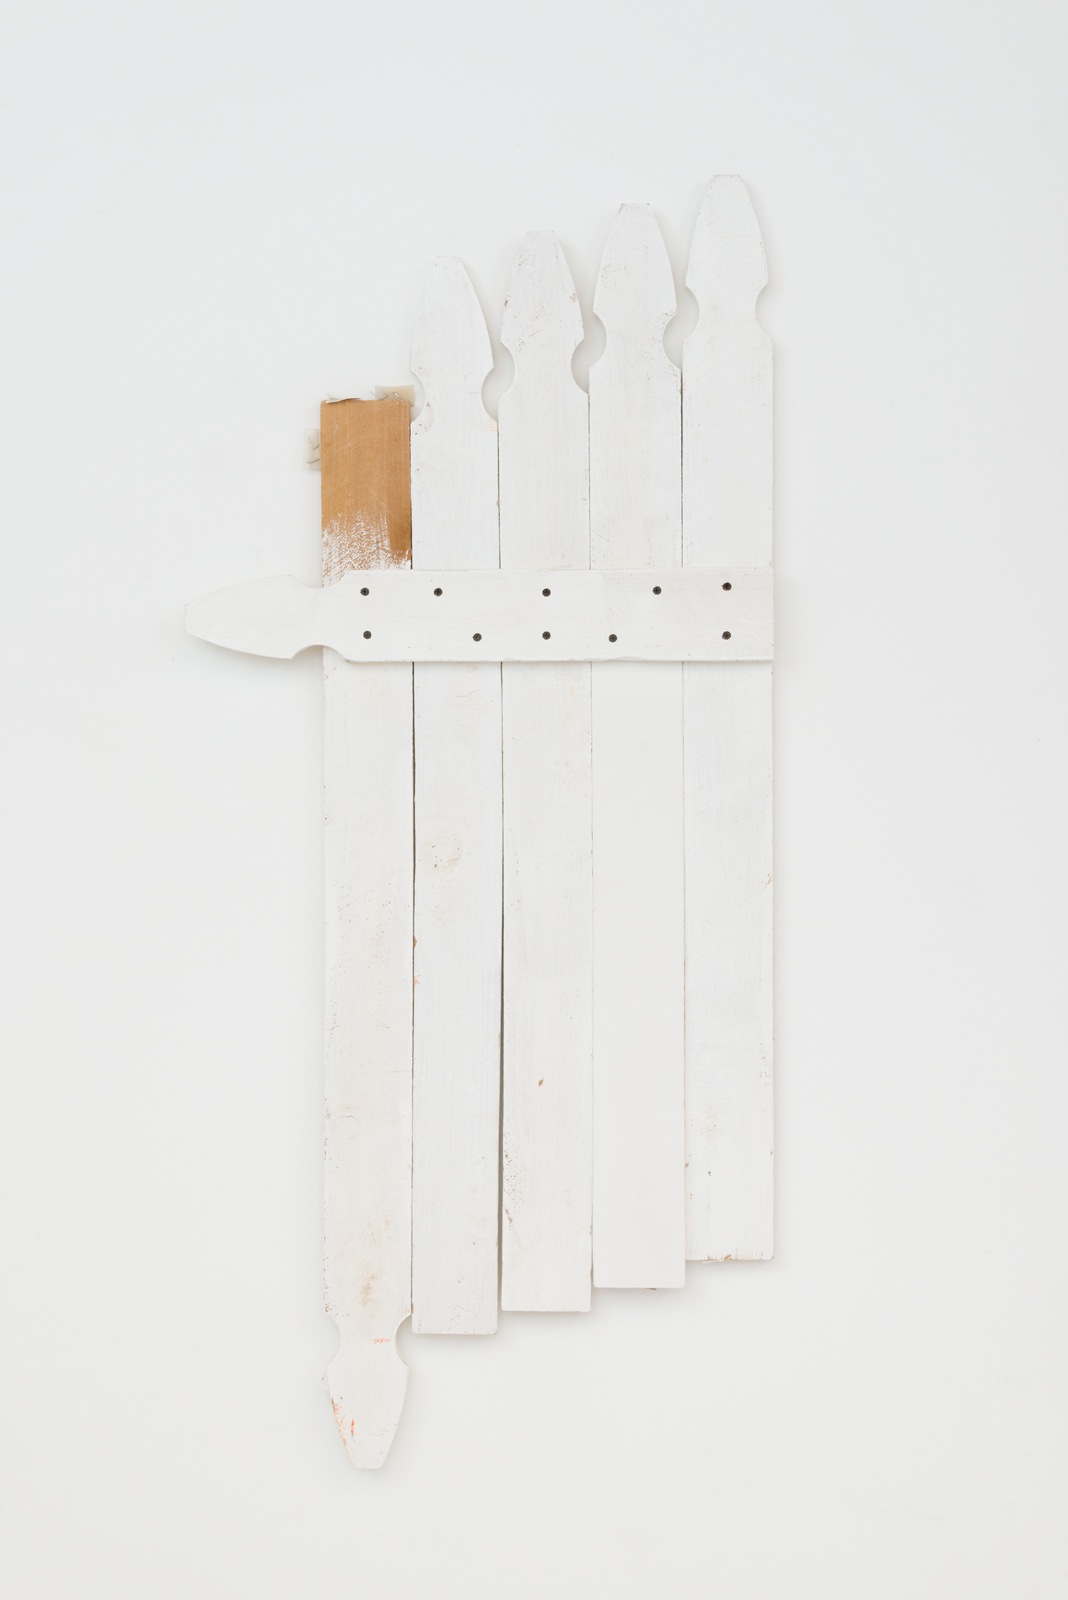 Samuel Scharf  Stay on your Side , 2017 wood, paint 52 x 23 x 2 in.